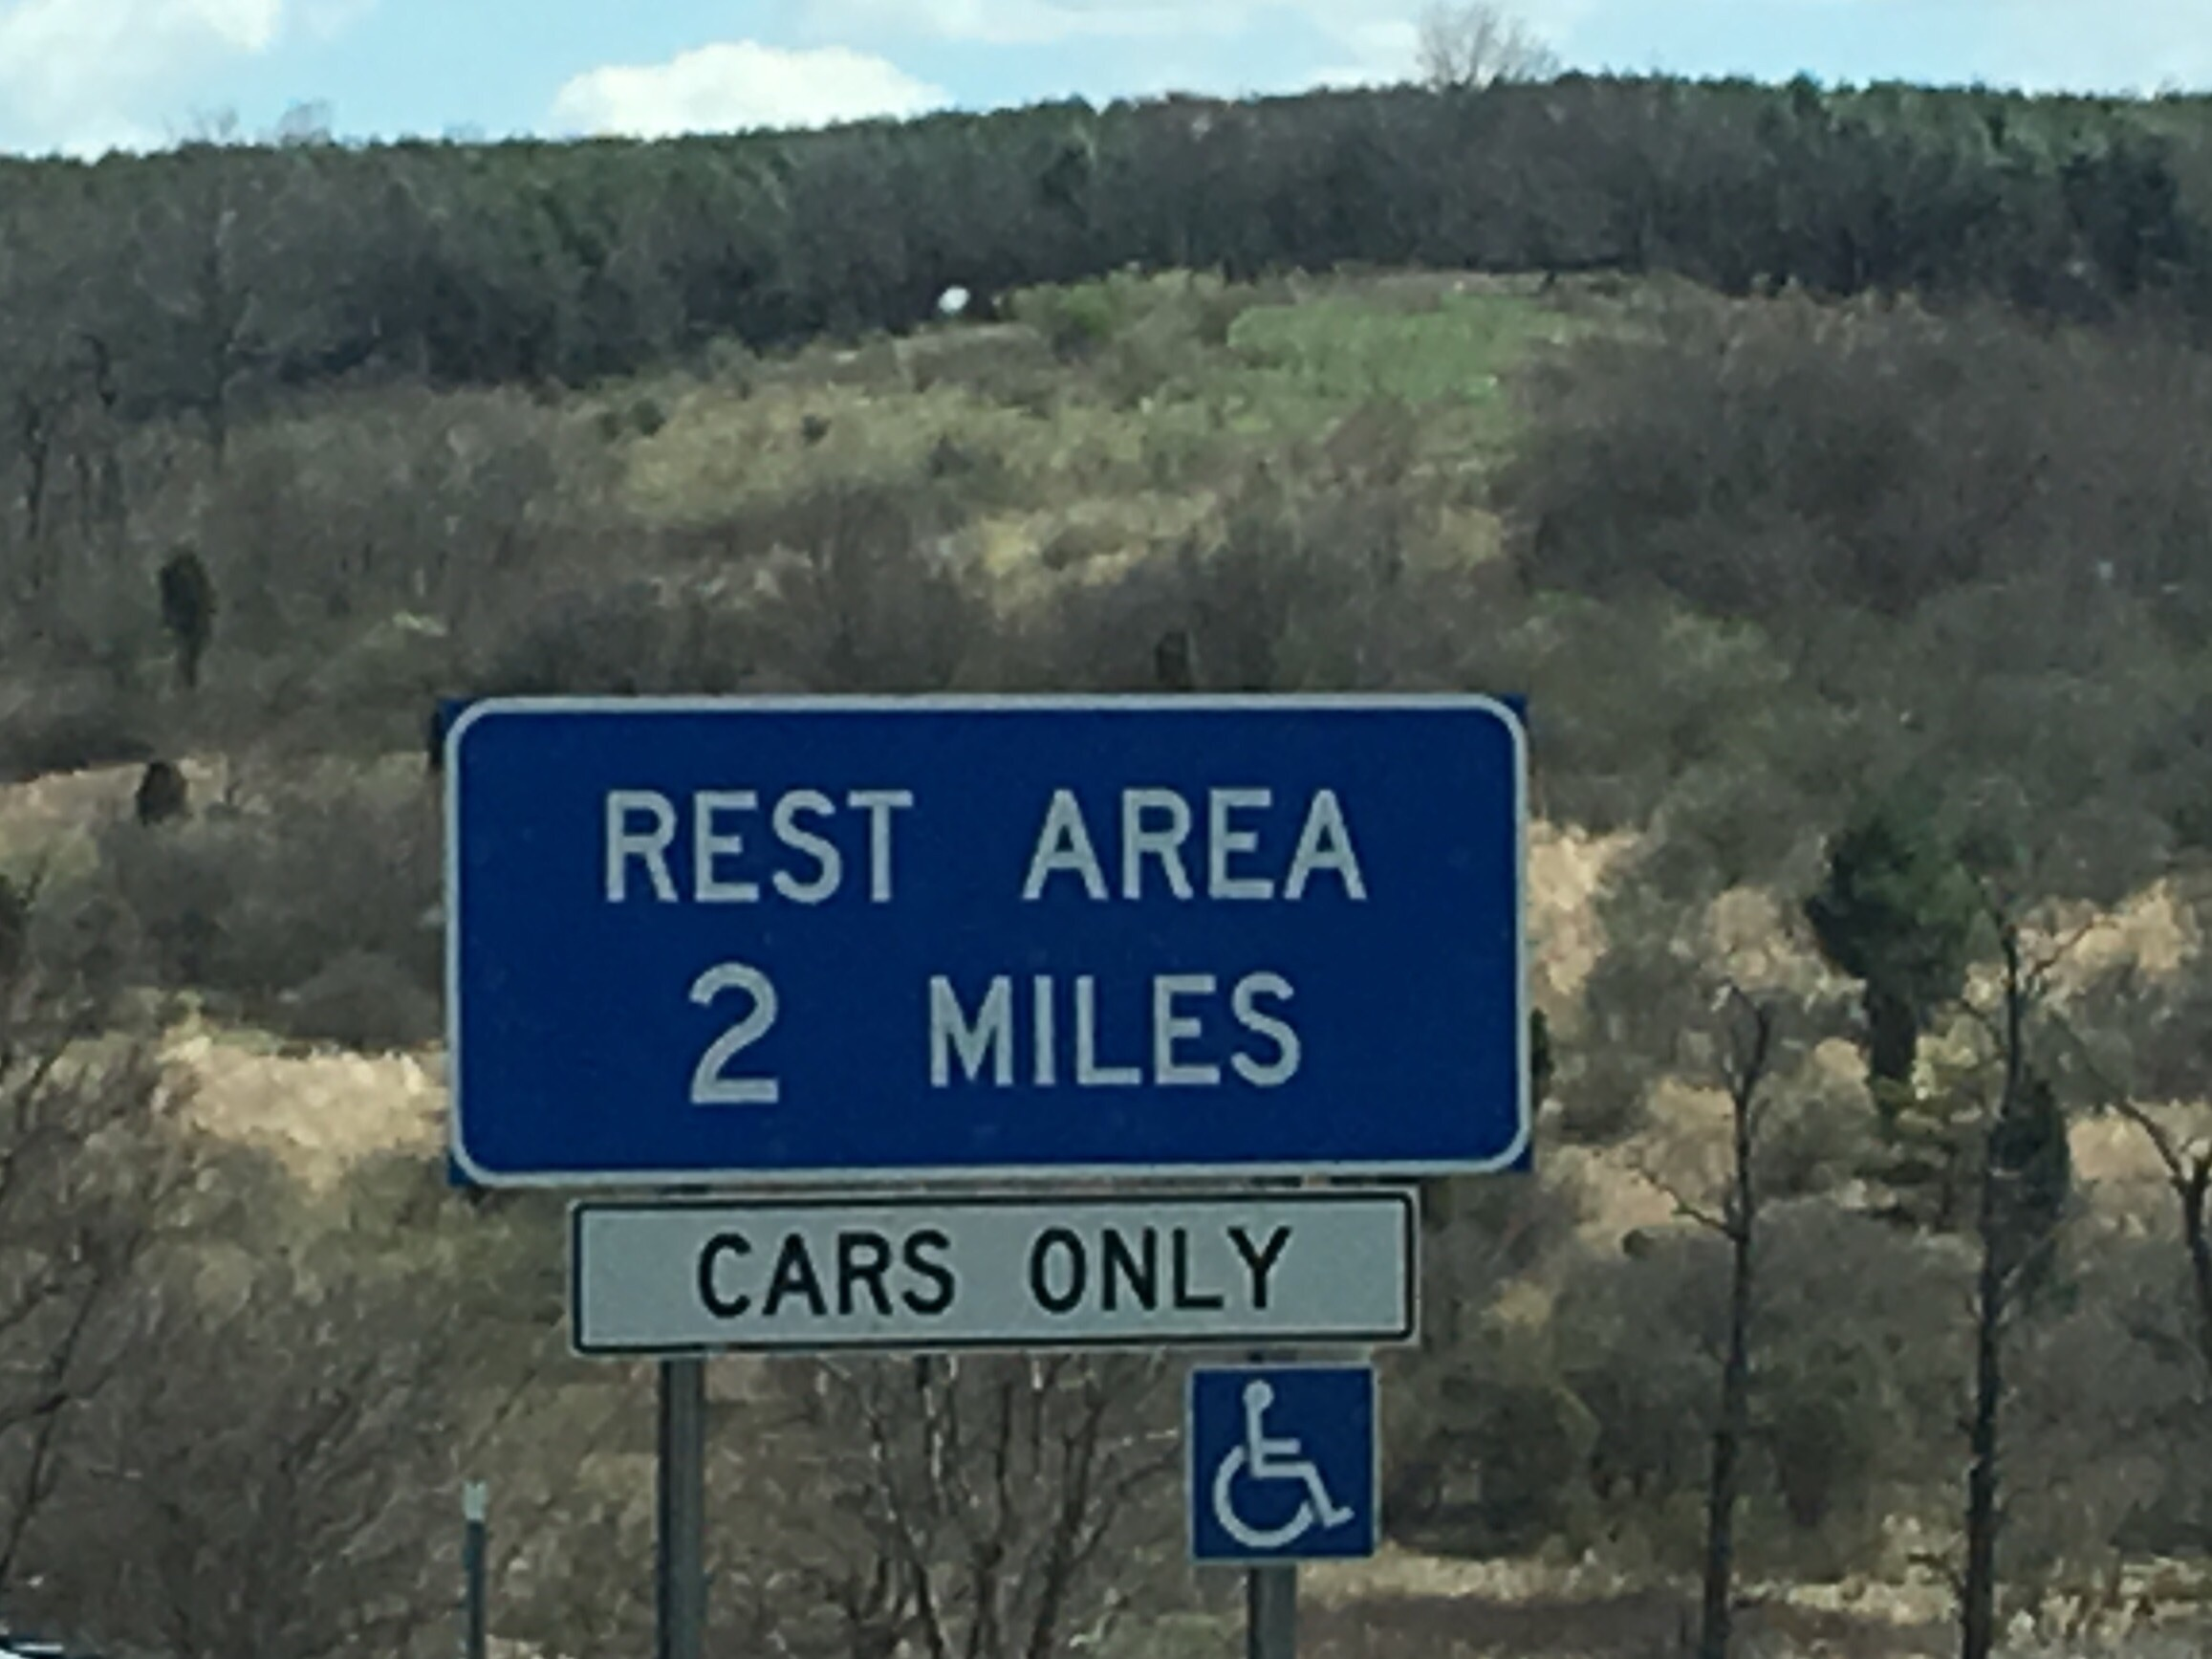 The Virginia I 81 rest areas are not RV friendly!